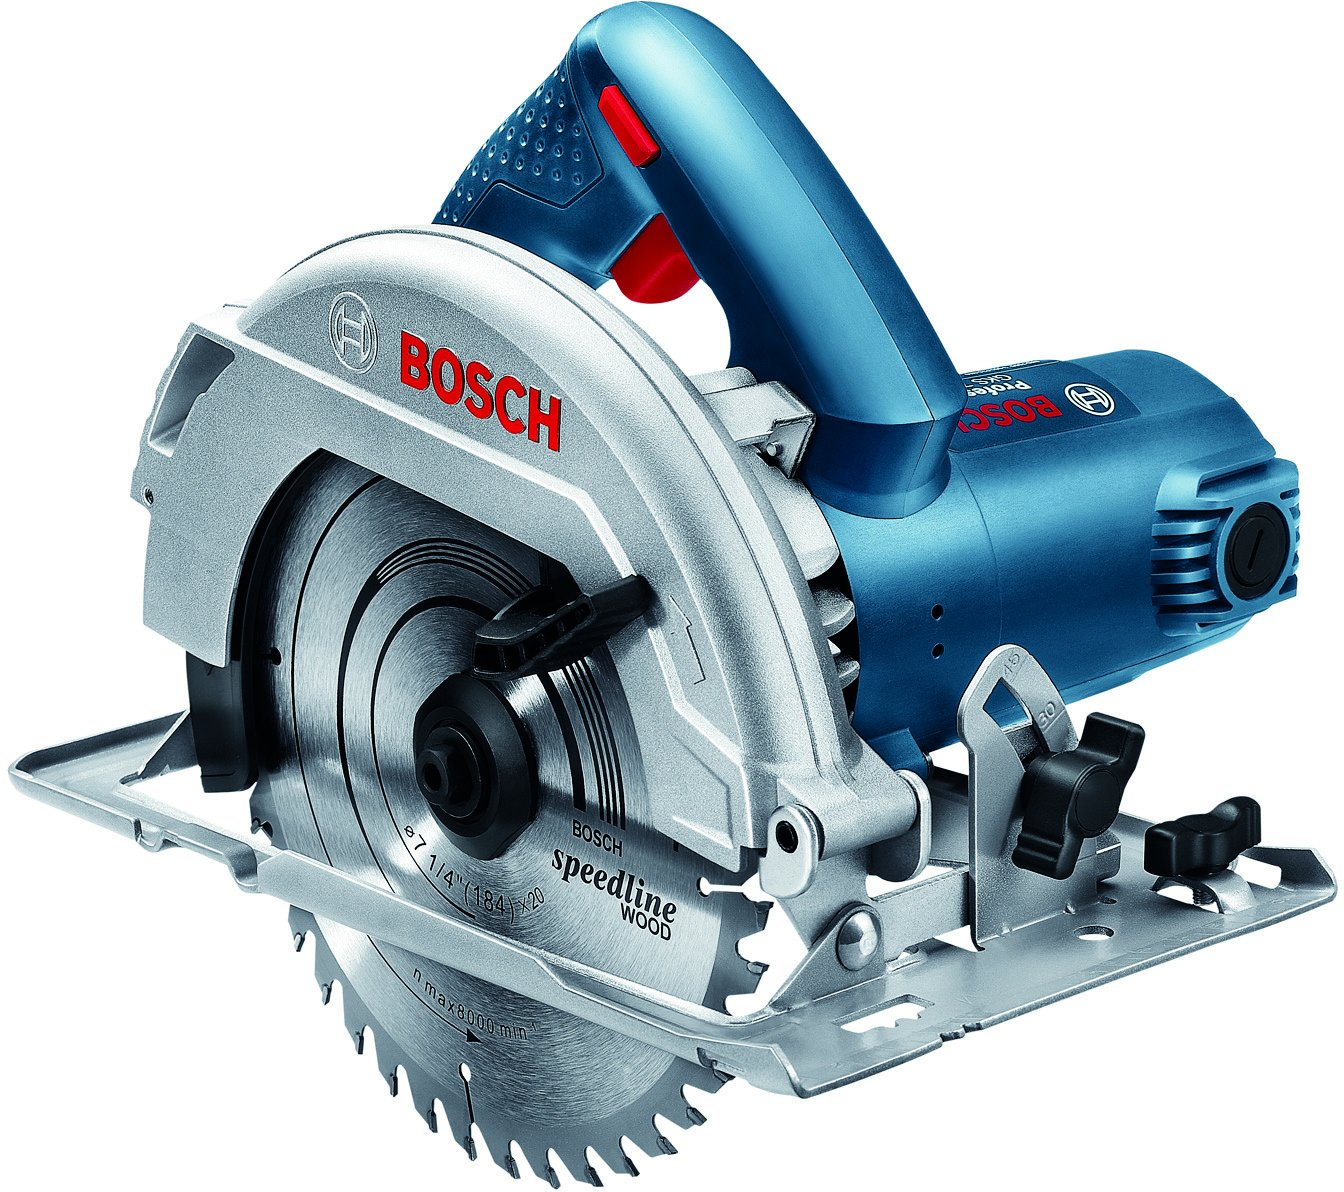 Bosch GKS 7000 Professional Hand-Held Circular Saw Compact and light weight on top of the standard / 220 Volt 60 Hz , Plug Type C ( Europe Shape )